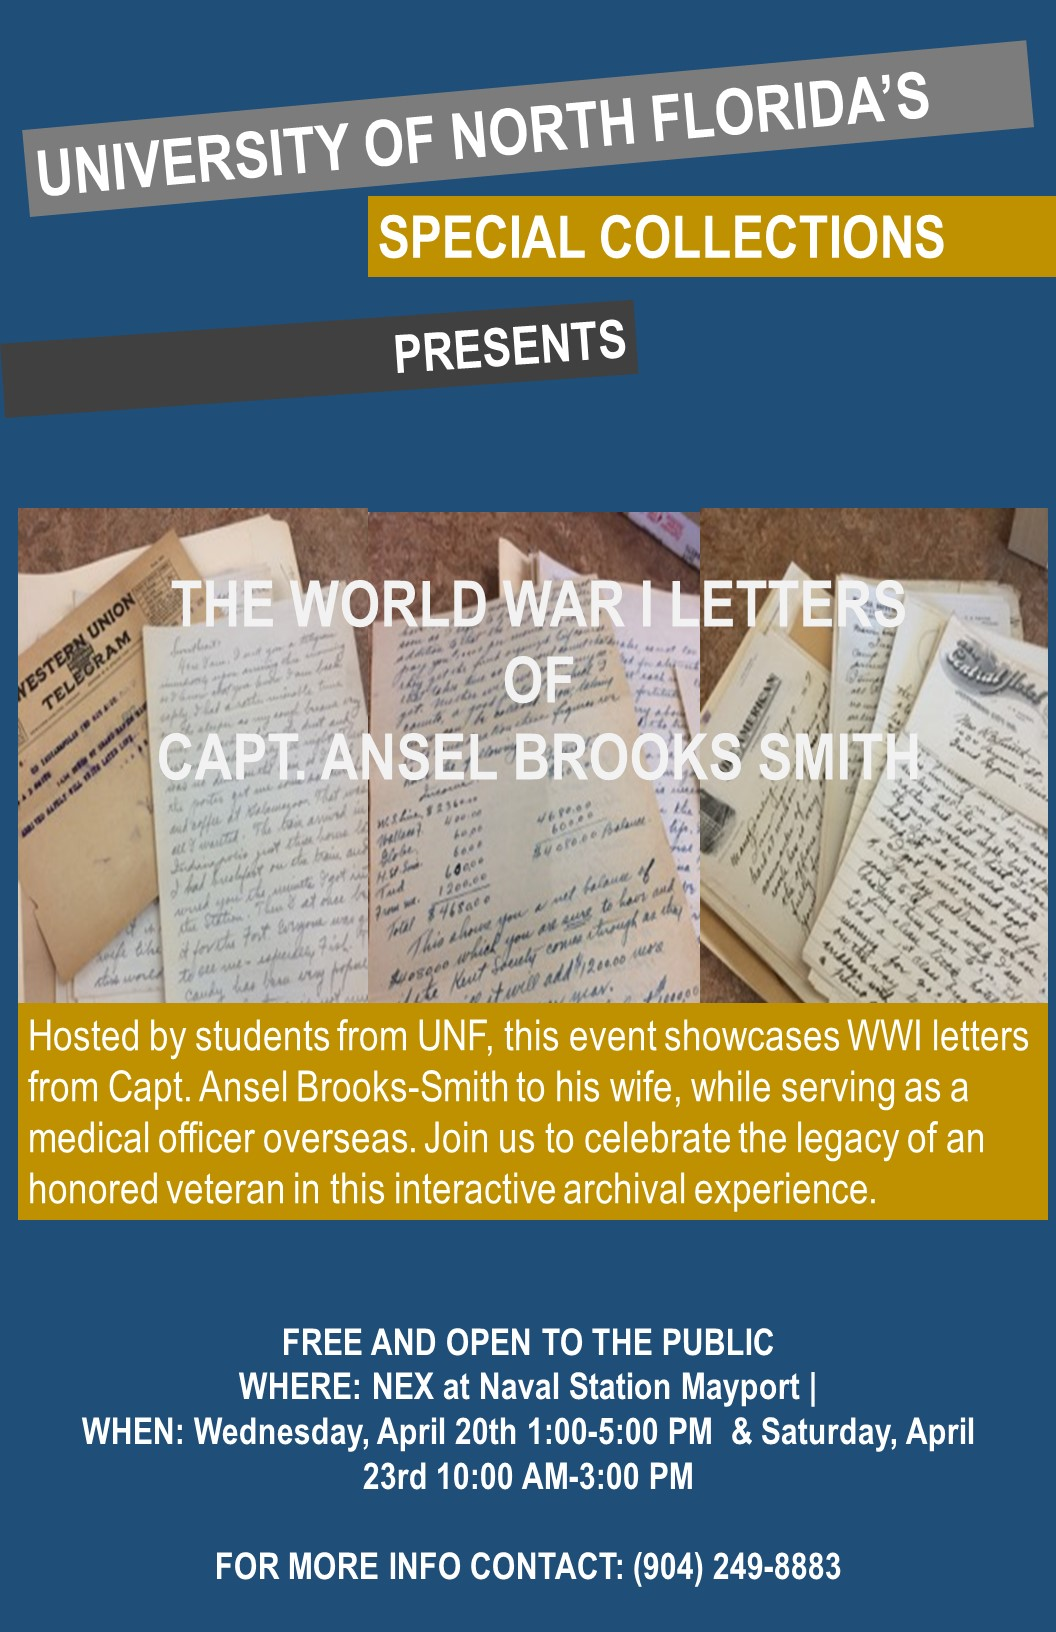 The World War I Letters of Capt. Ansel Brooks-Smith